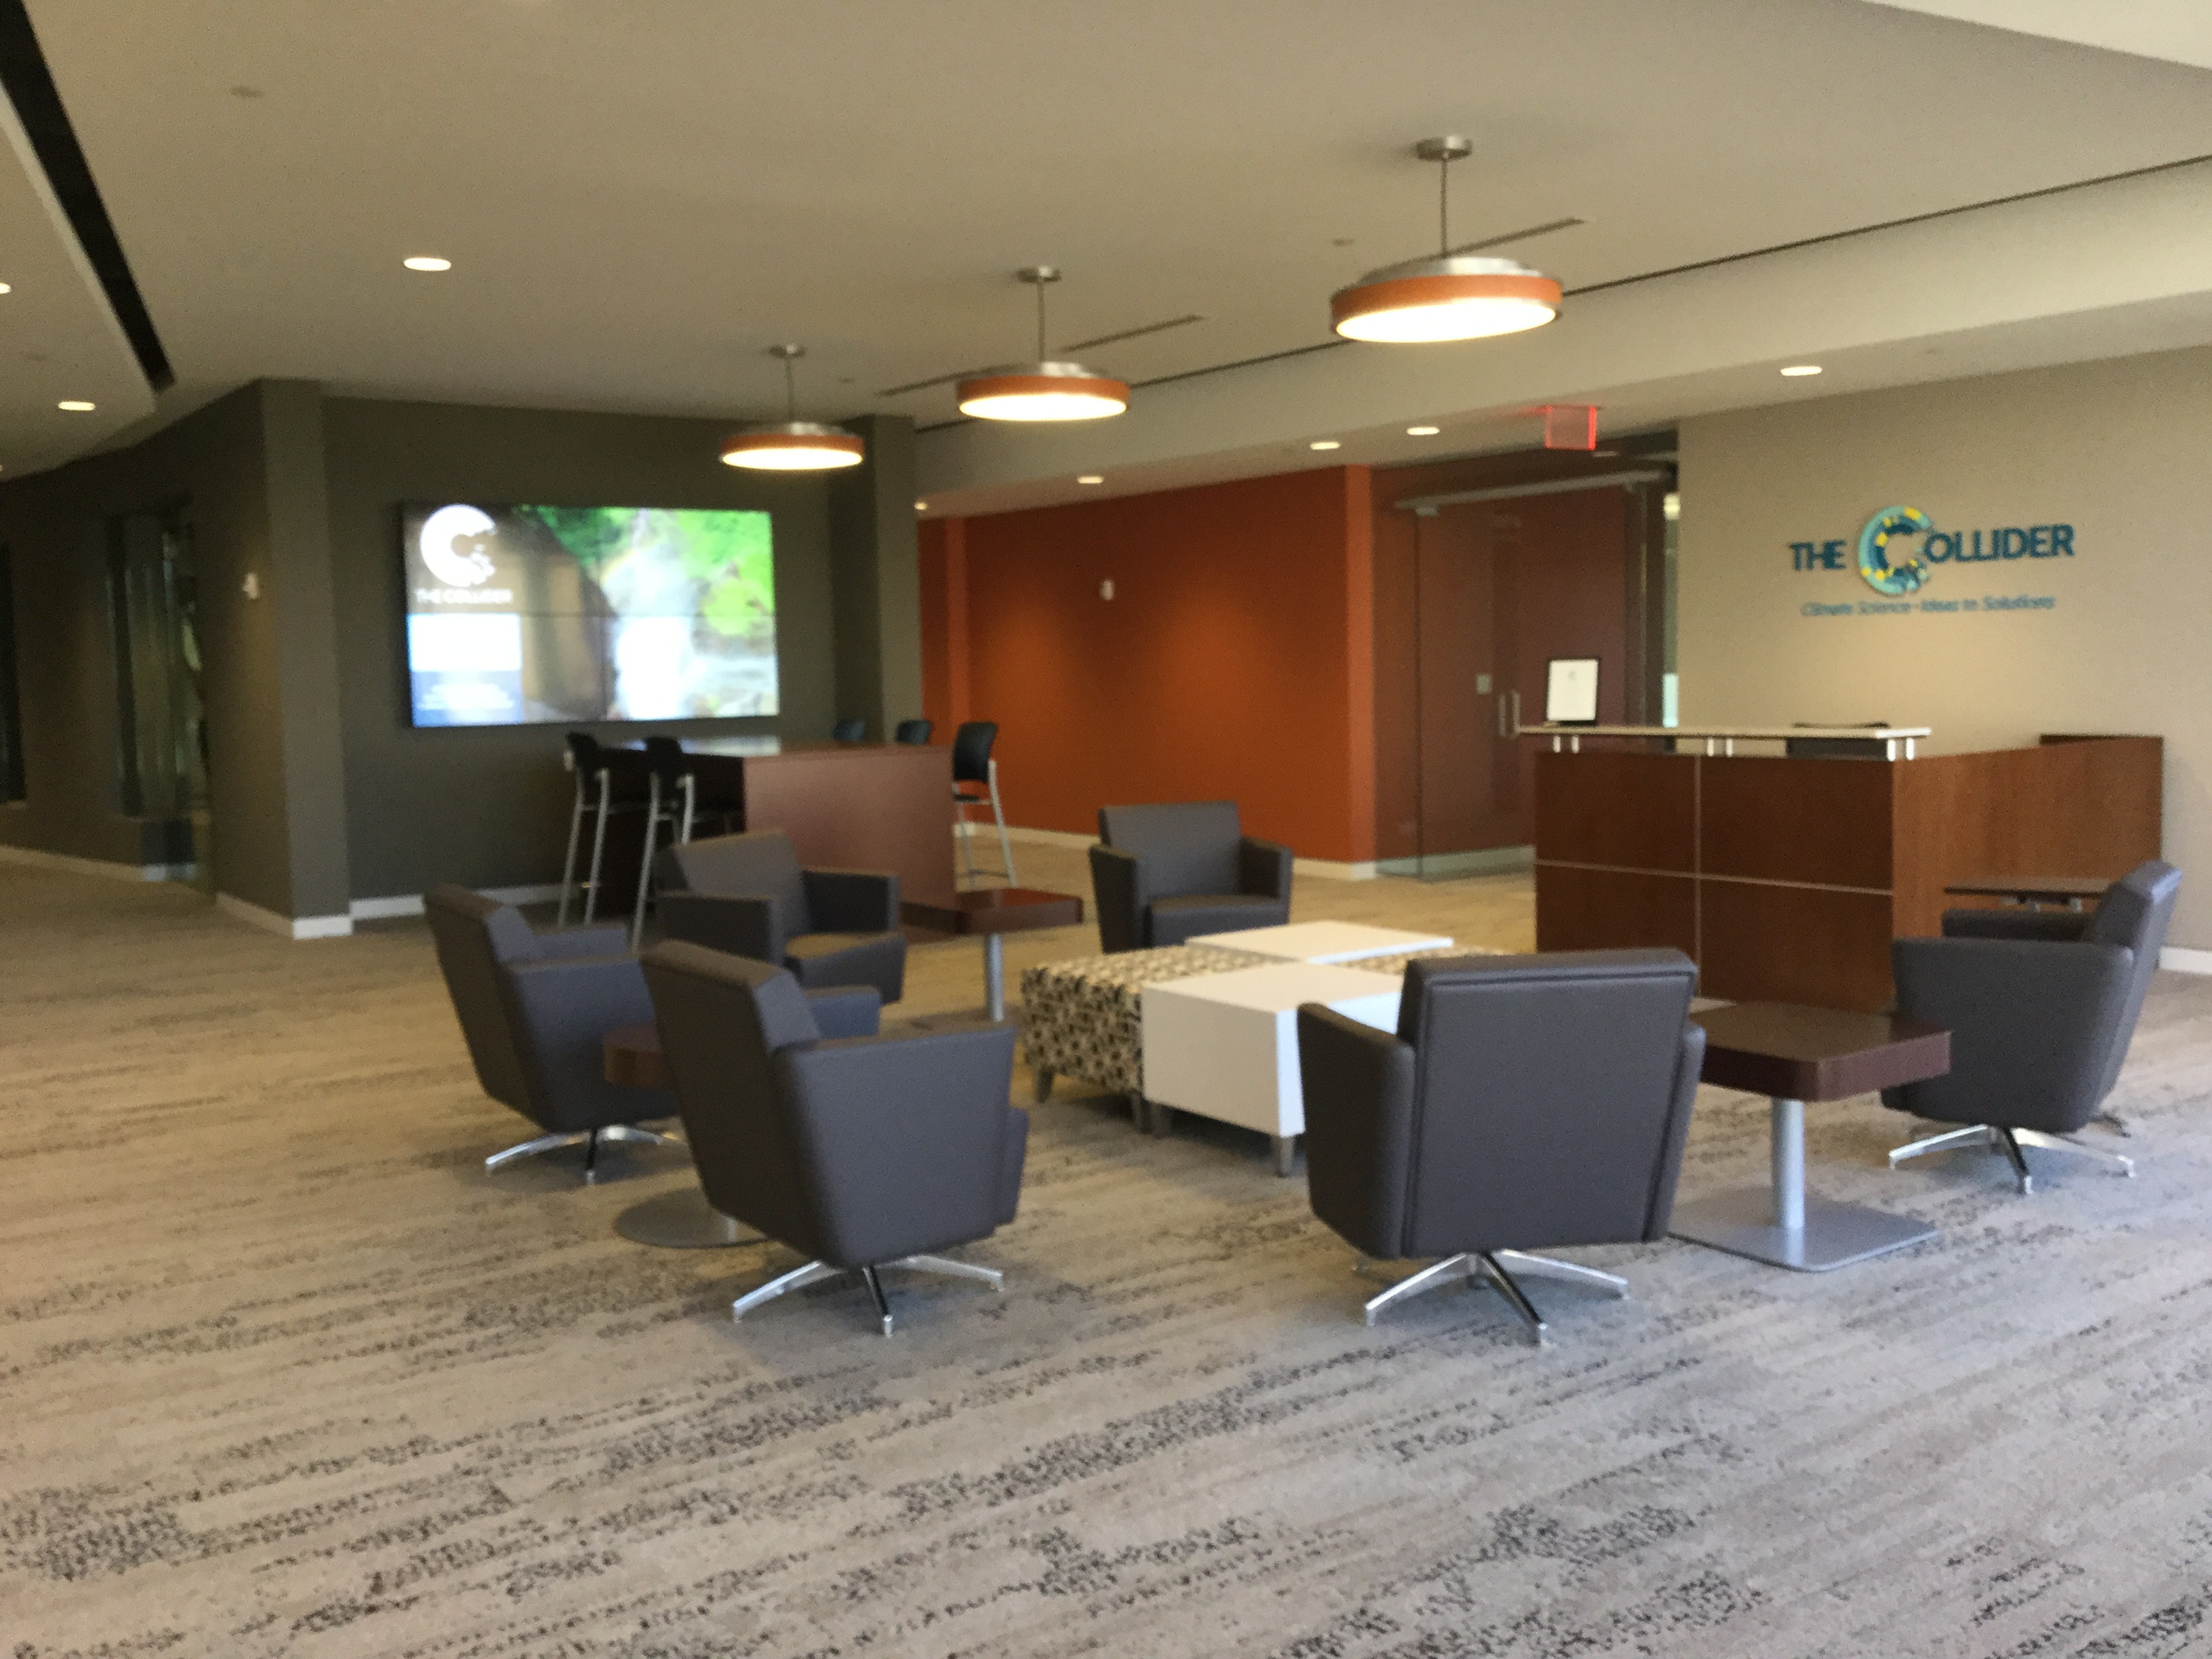 Lobby with Interface Human Nature Carpet Tile, National Fringe Lounge Seating and Ottomans and National Office furniture Staccato Occasional Tables.